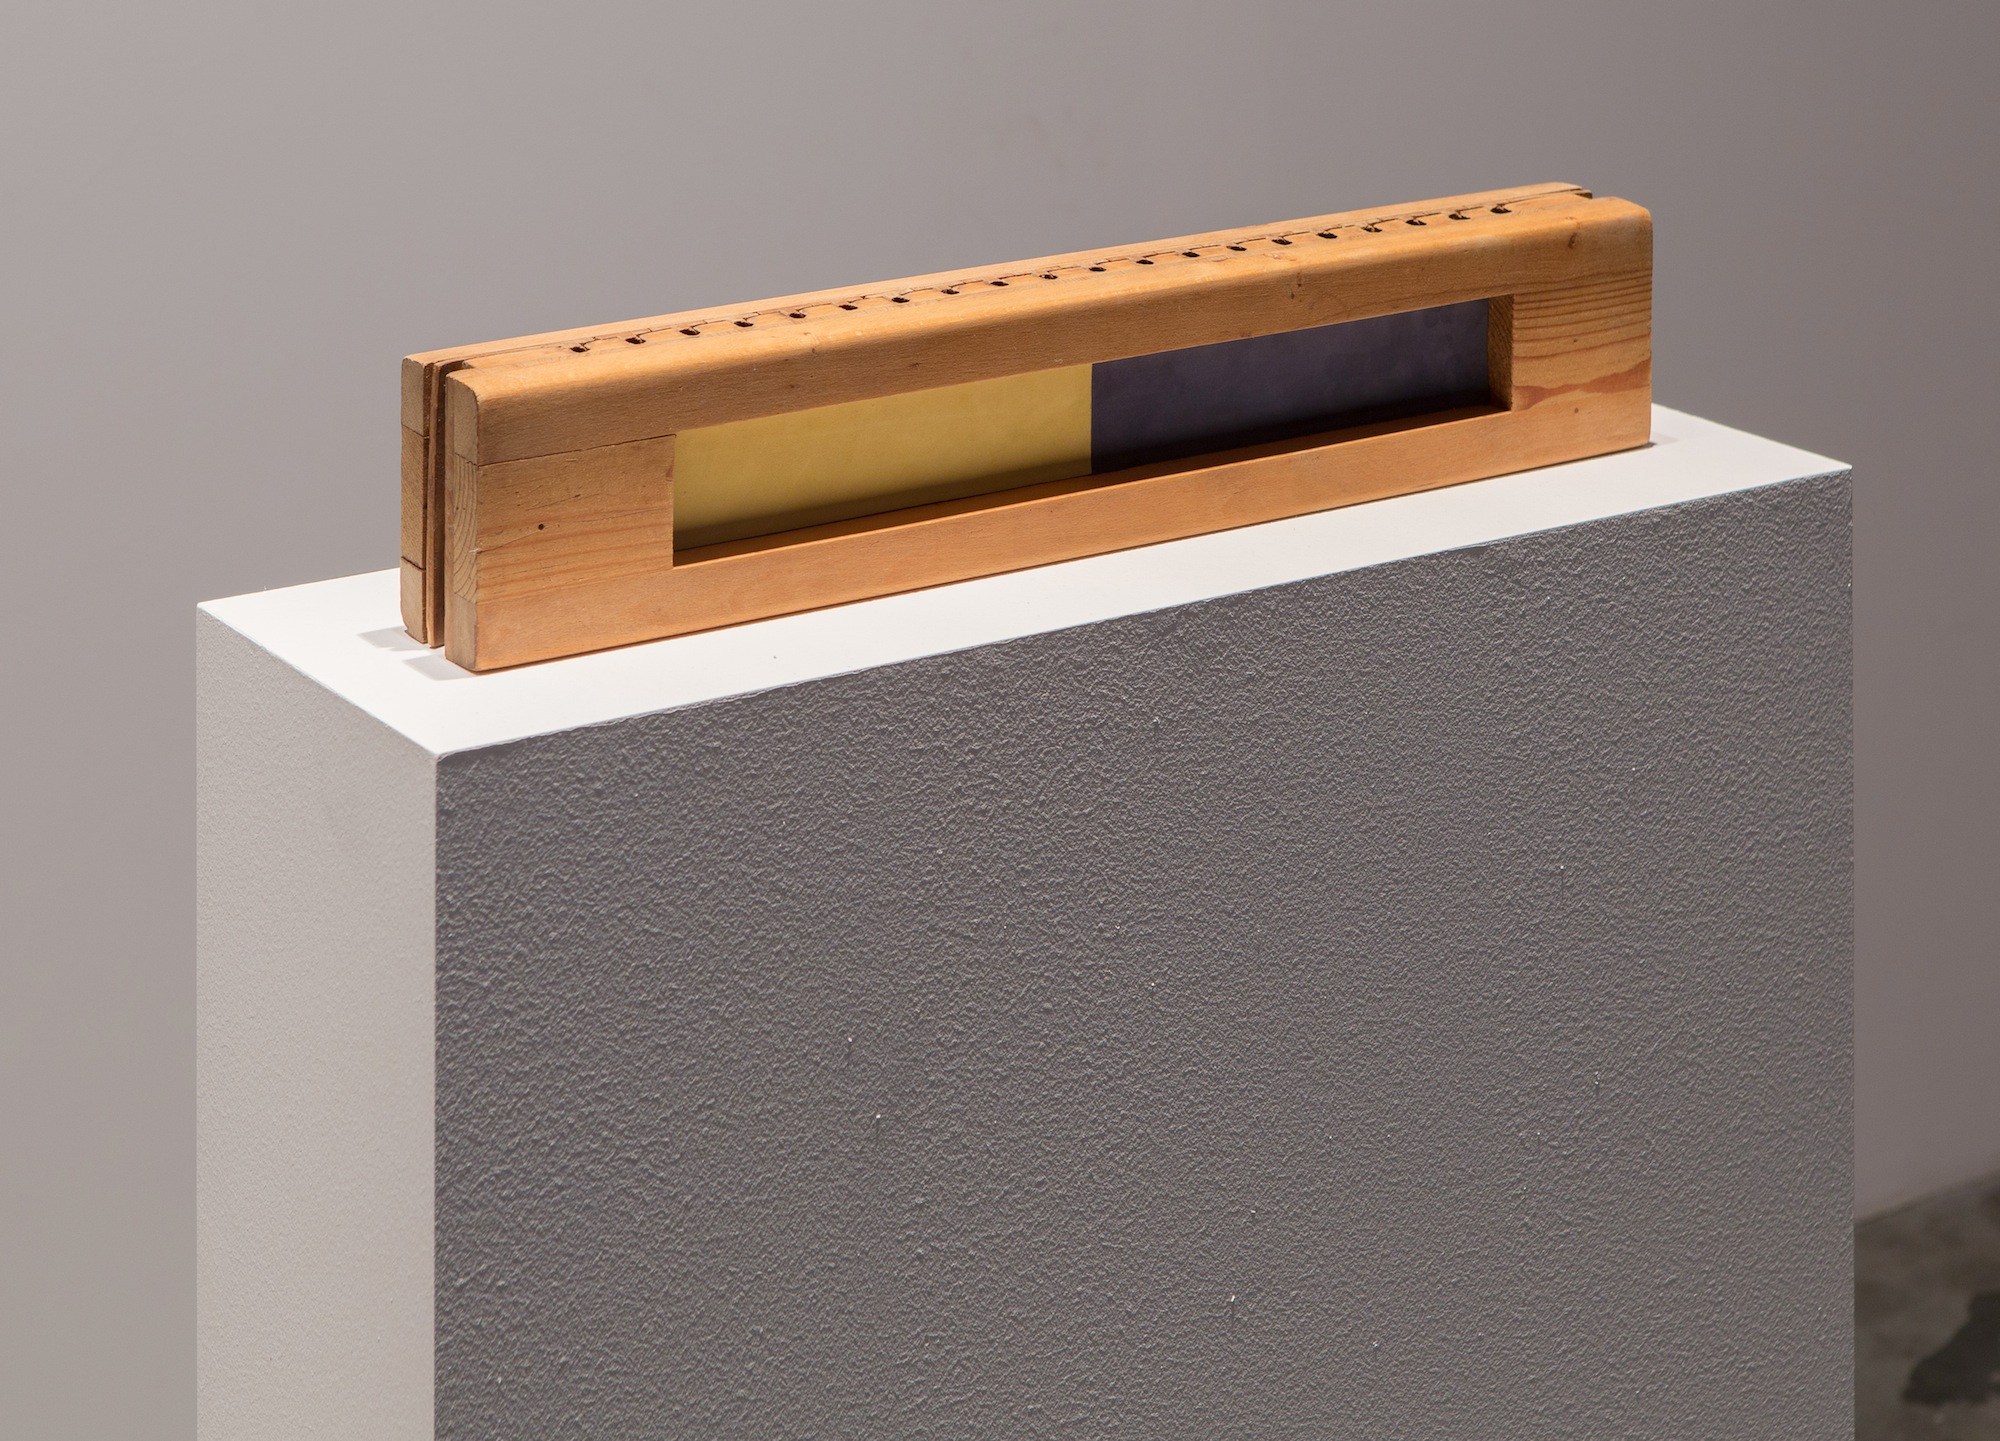 Objected 2 2013 Wood sculpture 6.5 x 56 x 10 cm